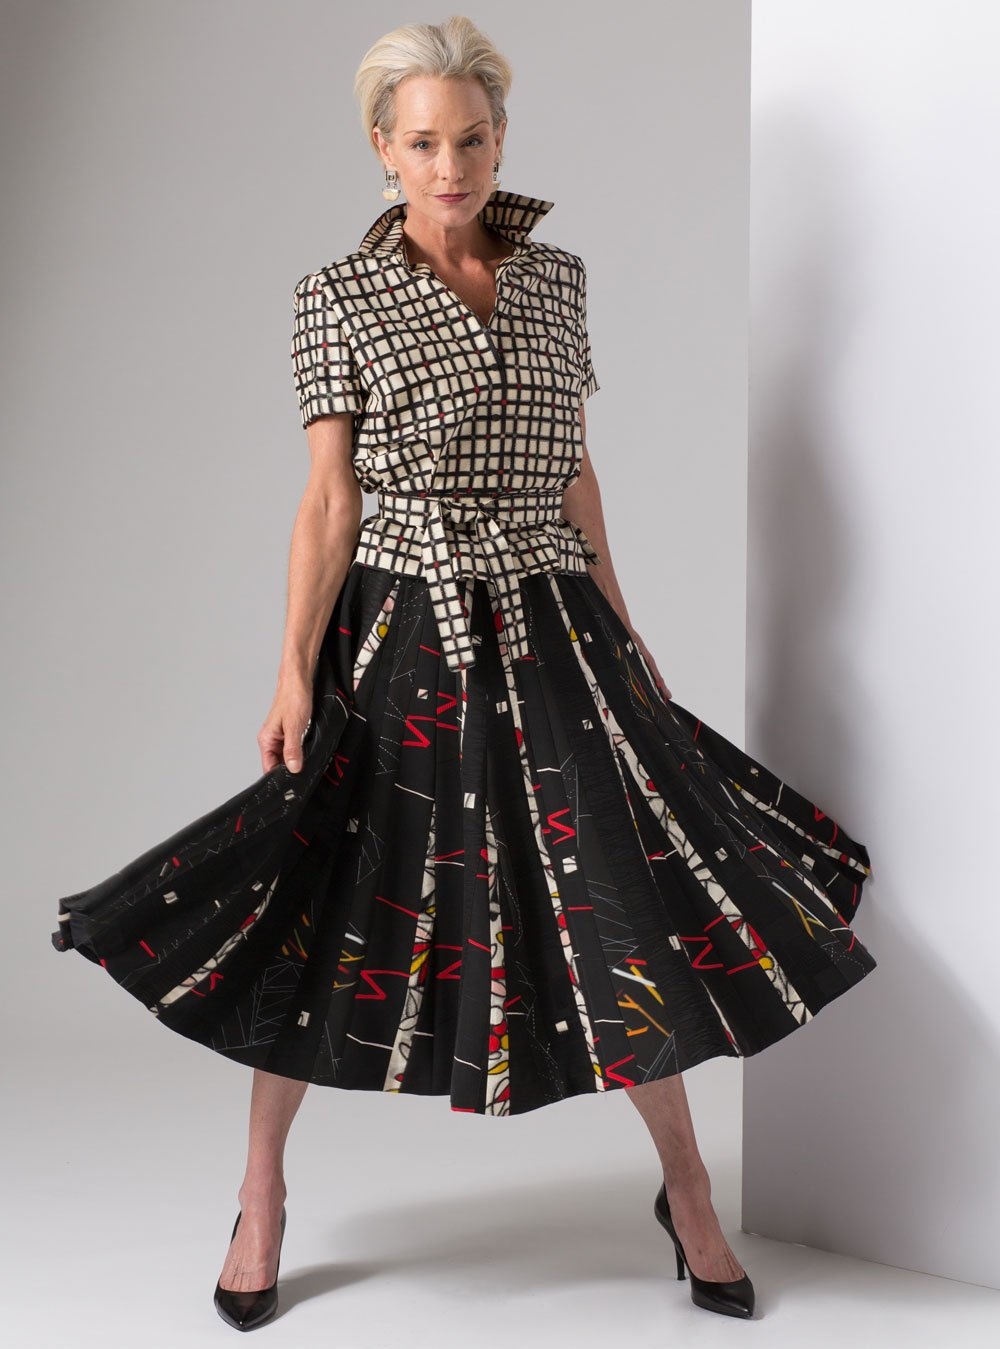 Full striped skirt and blouse | Ann Williamson